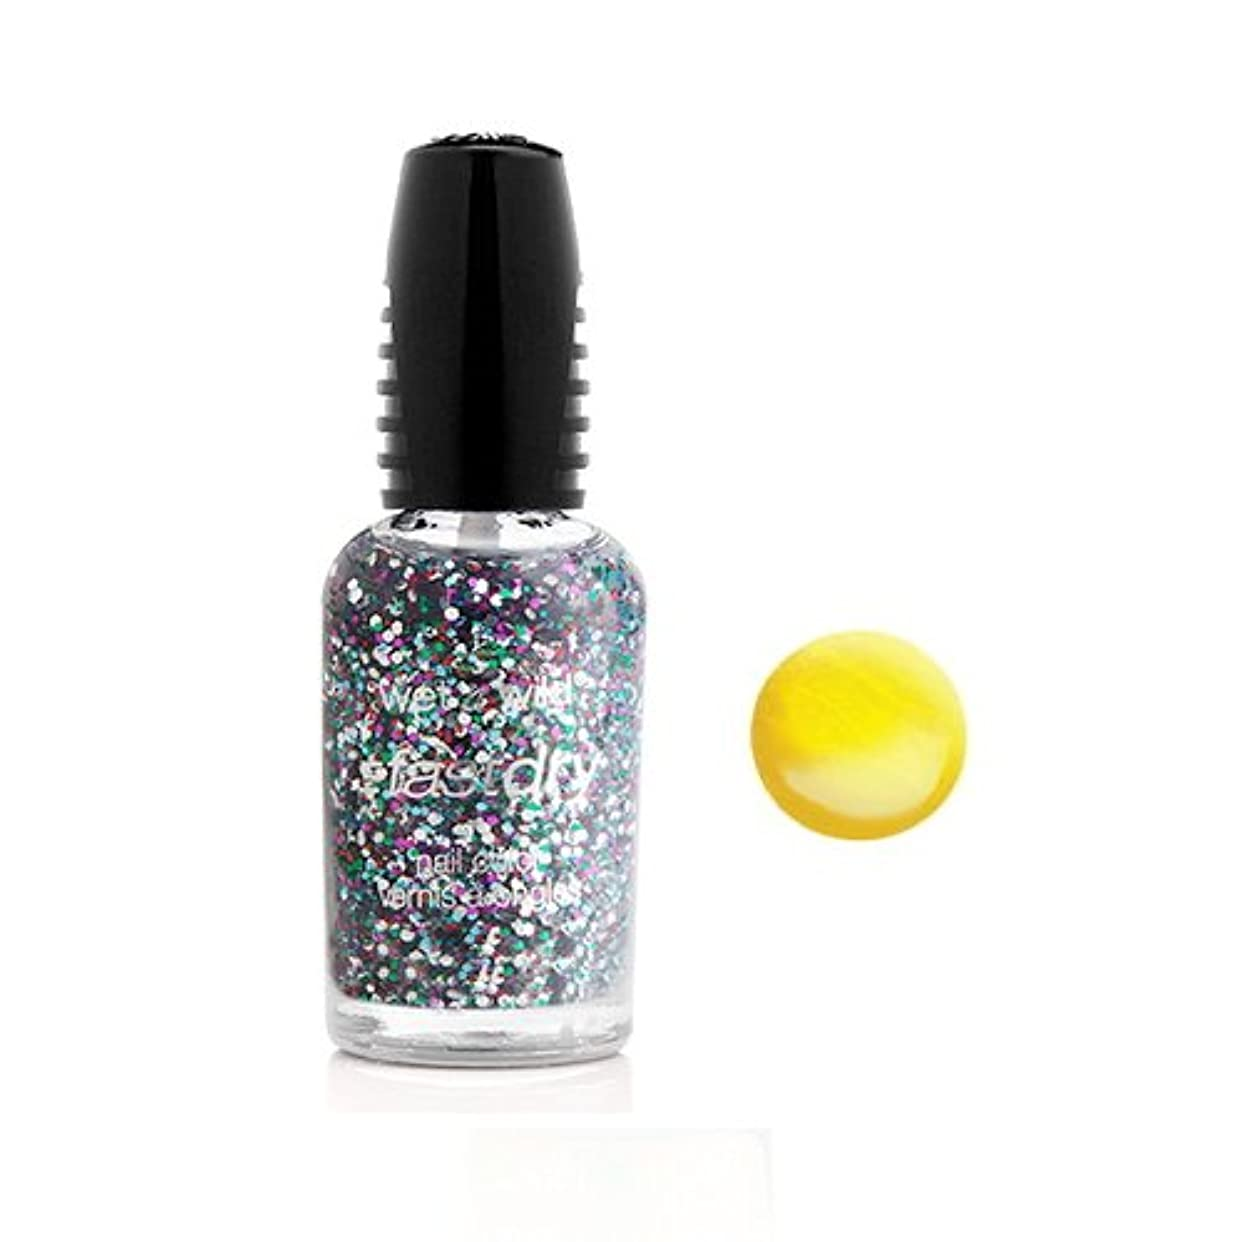 ビルマ死傷者珍しいWET N WILD Fastdry Nail Color - The Wonder Yellow (並行輸入品)